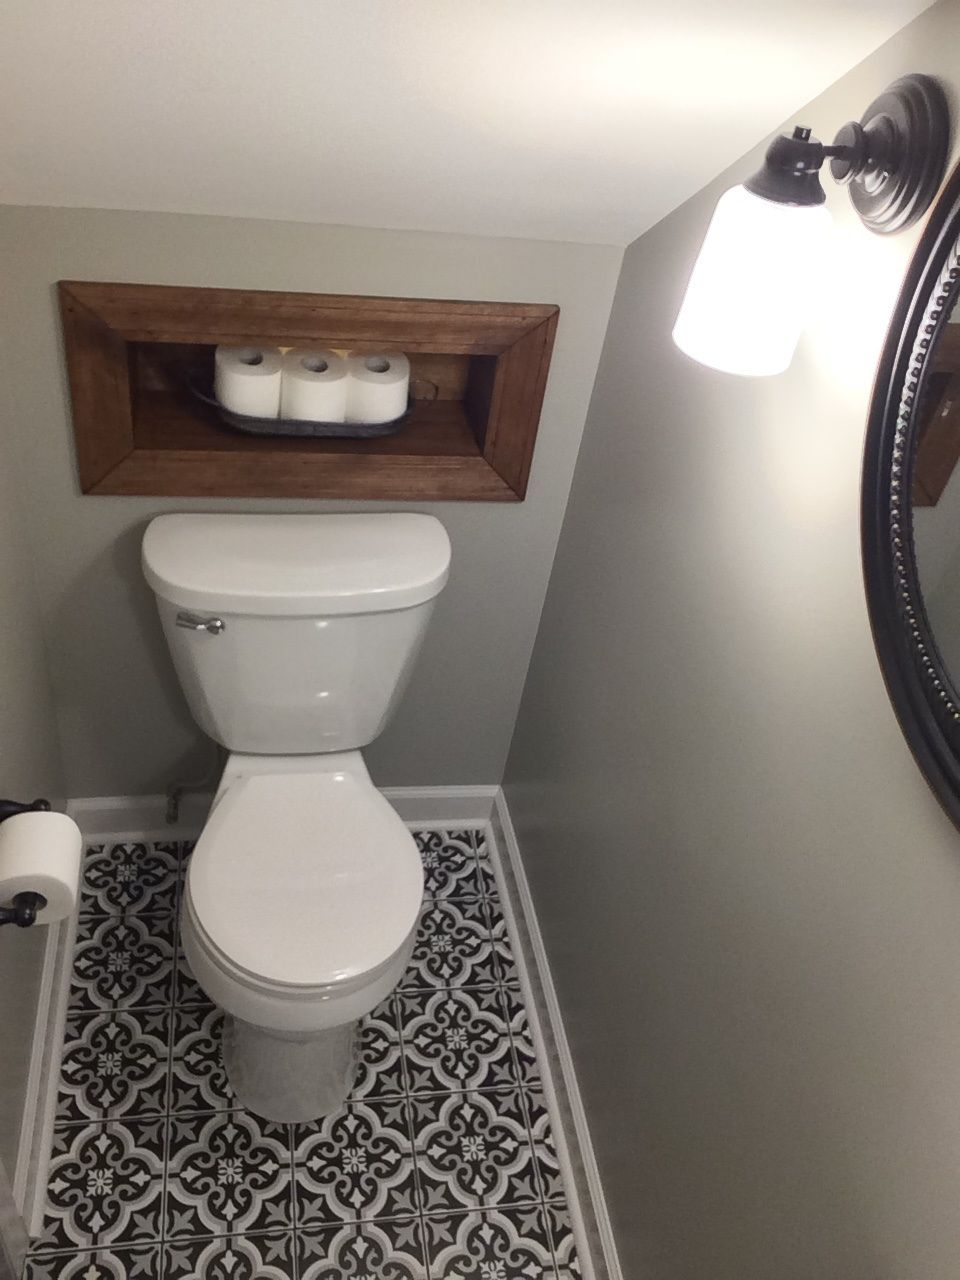 half bath tucked under stairs bathroom remodel - Bathroom Designs Under Stairs